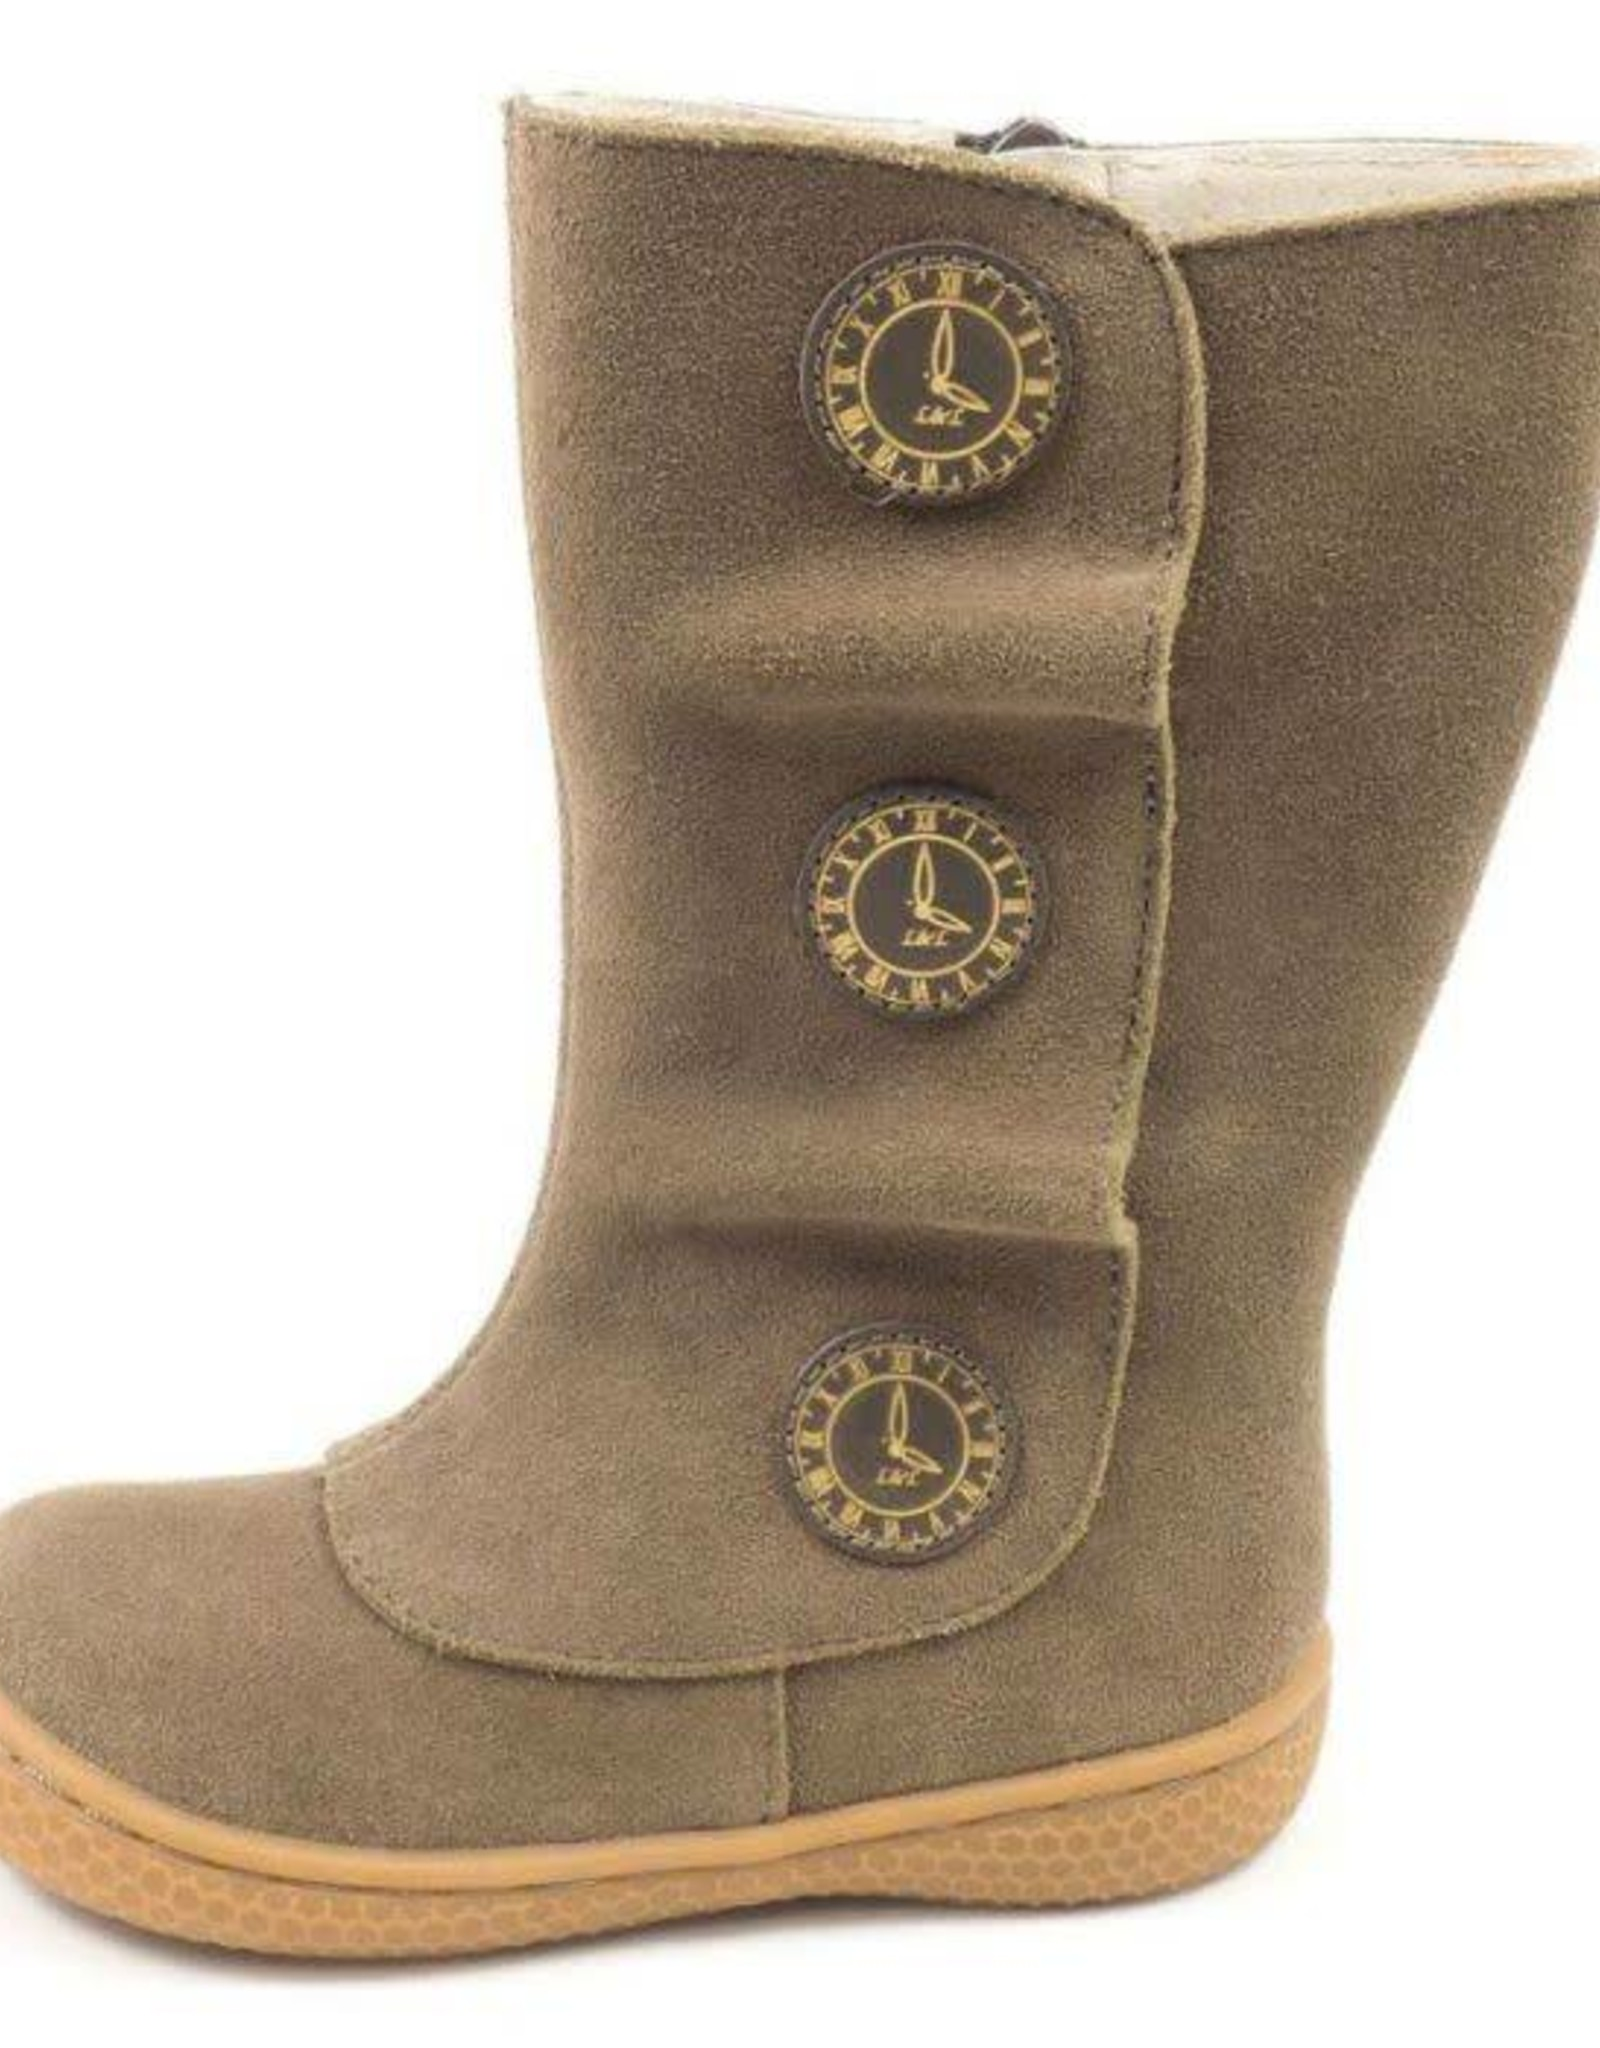 Livie and Luca Tiempo Boots in Taupe Suede